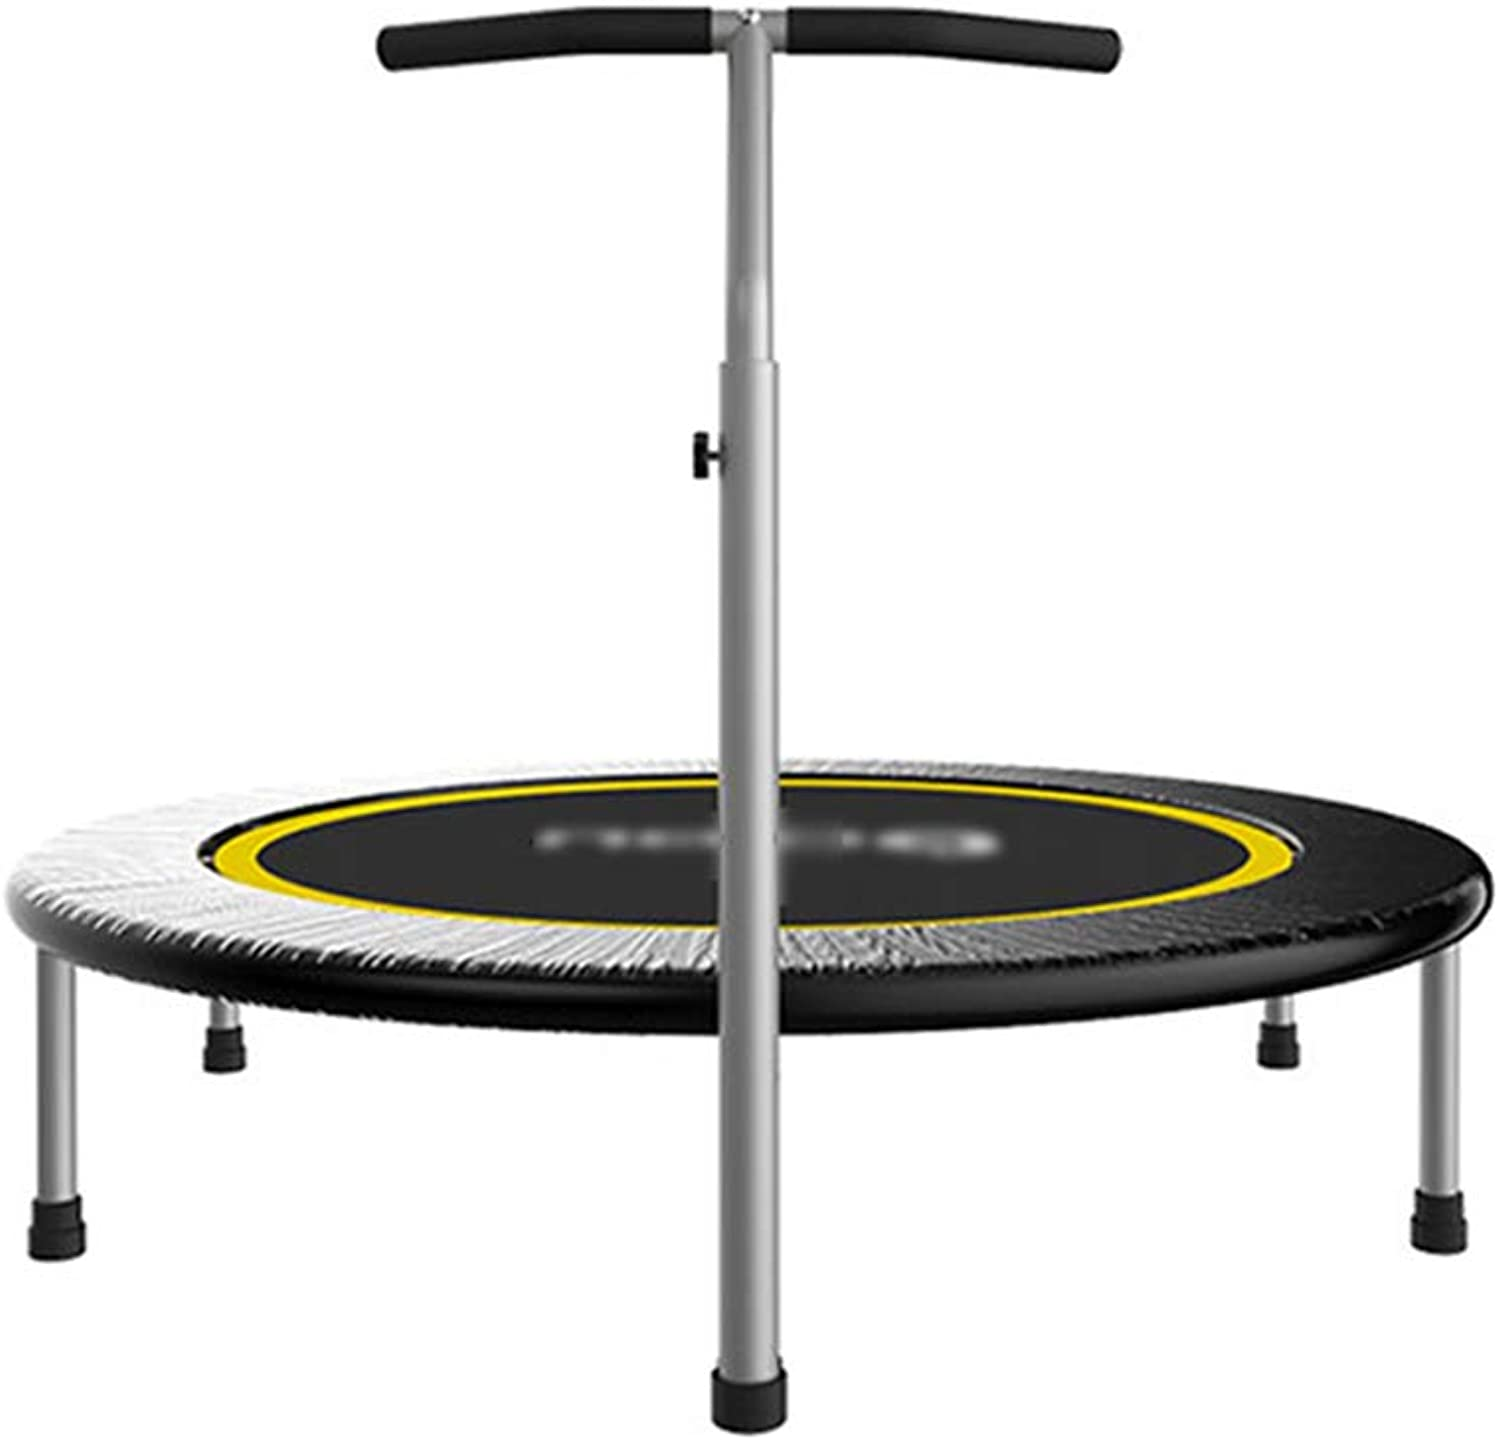 Trampoline with Adjustable Handle, Safety and Durable Toddler Trampolines Elastic Fitness Trainer for Kids or Adults Max Load 440lbs